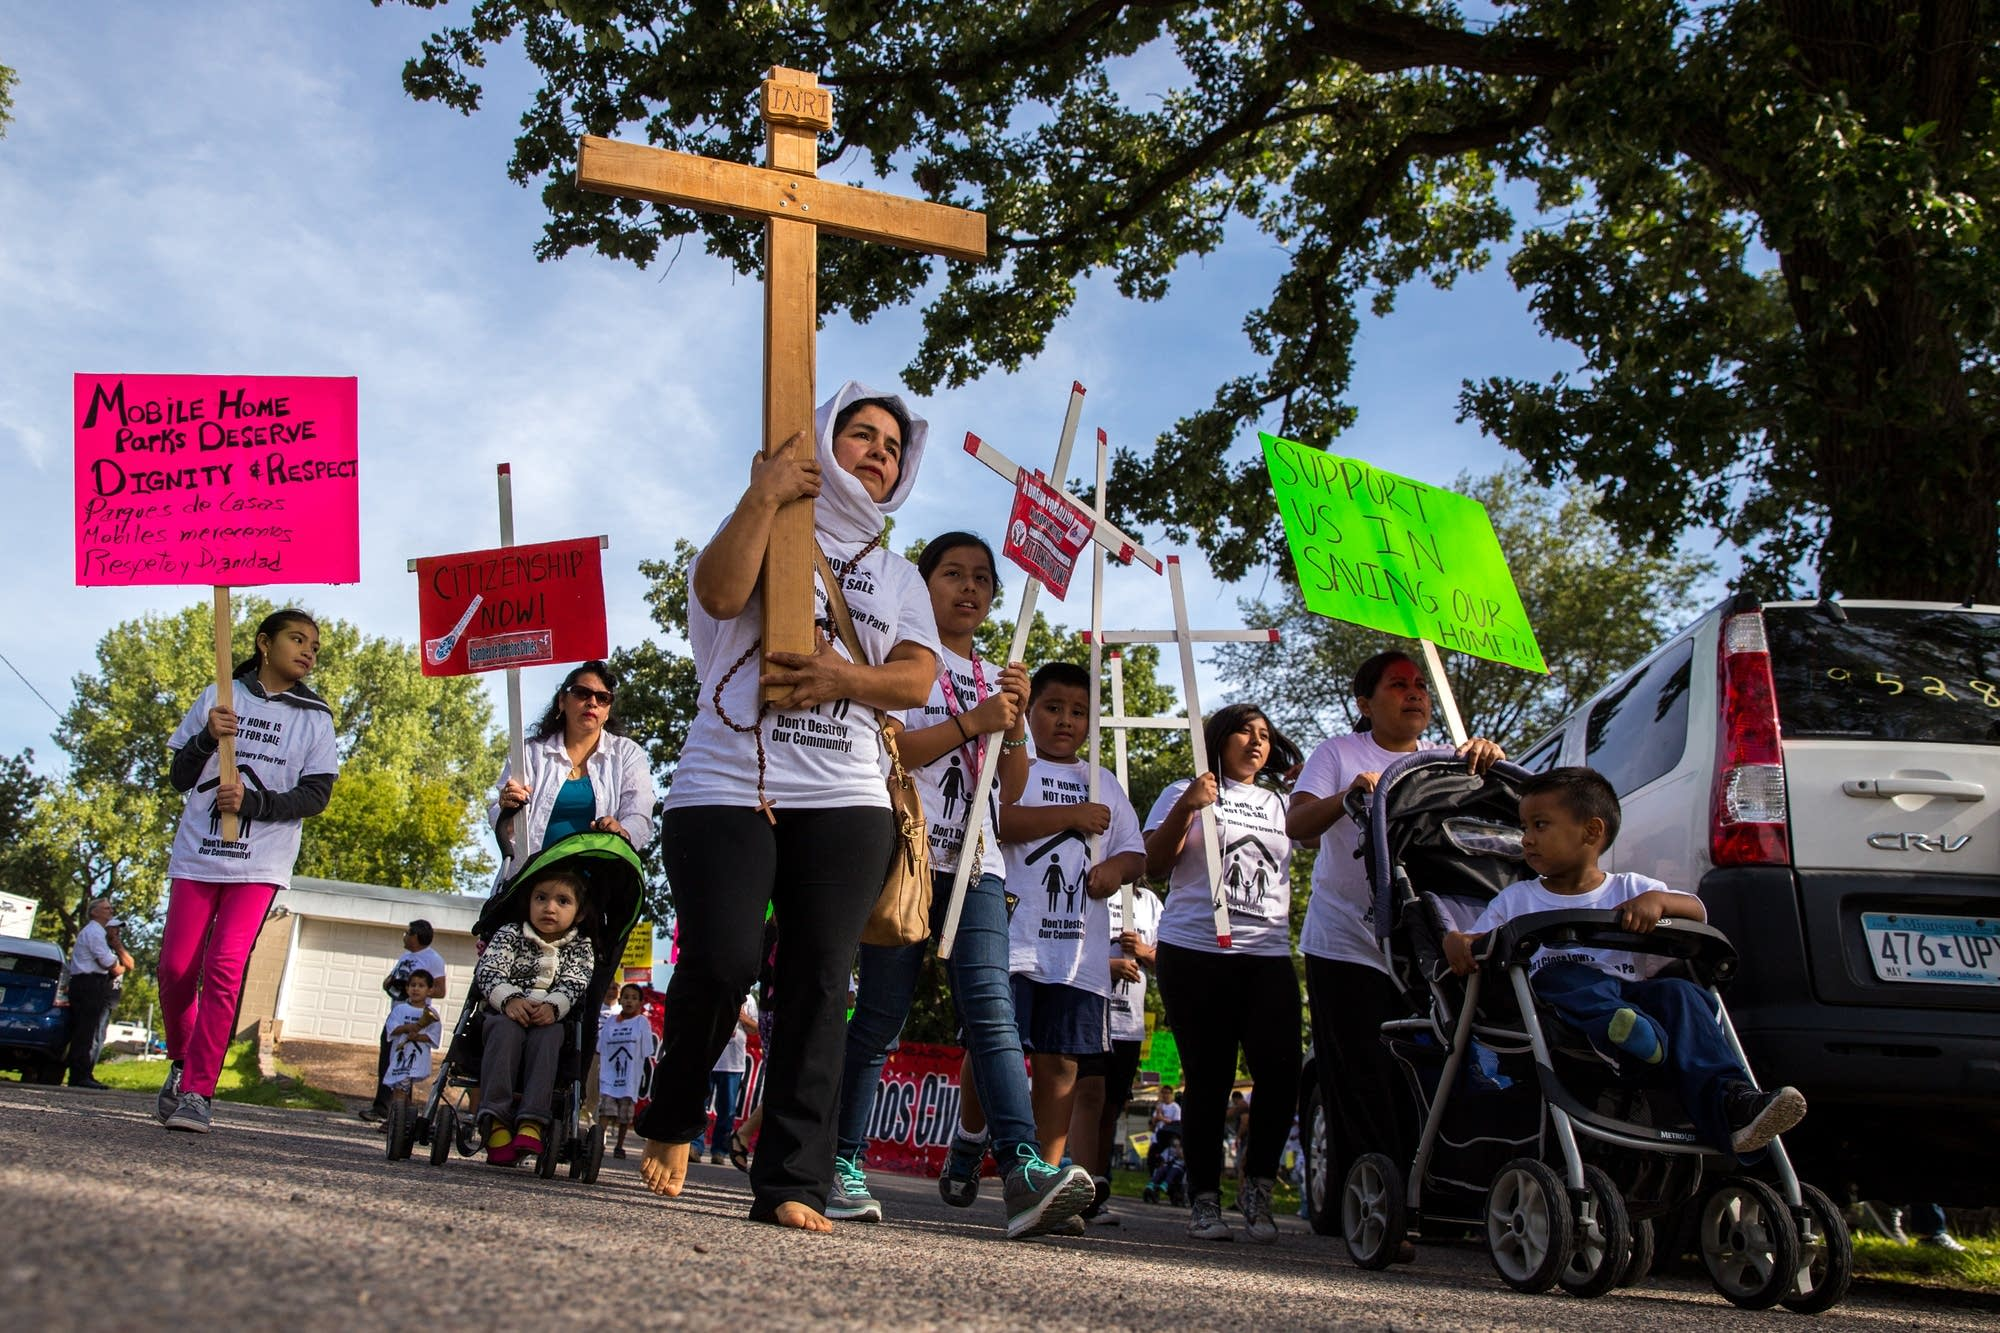 Antonia Alvarez Leads A March To The Courthouse